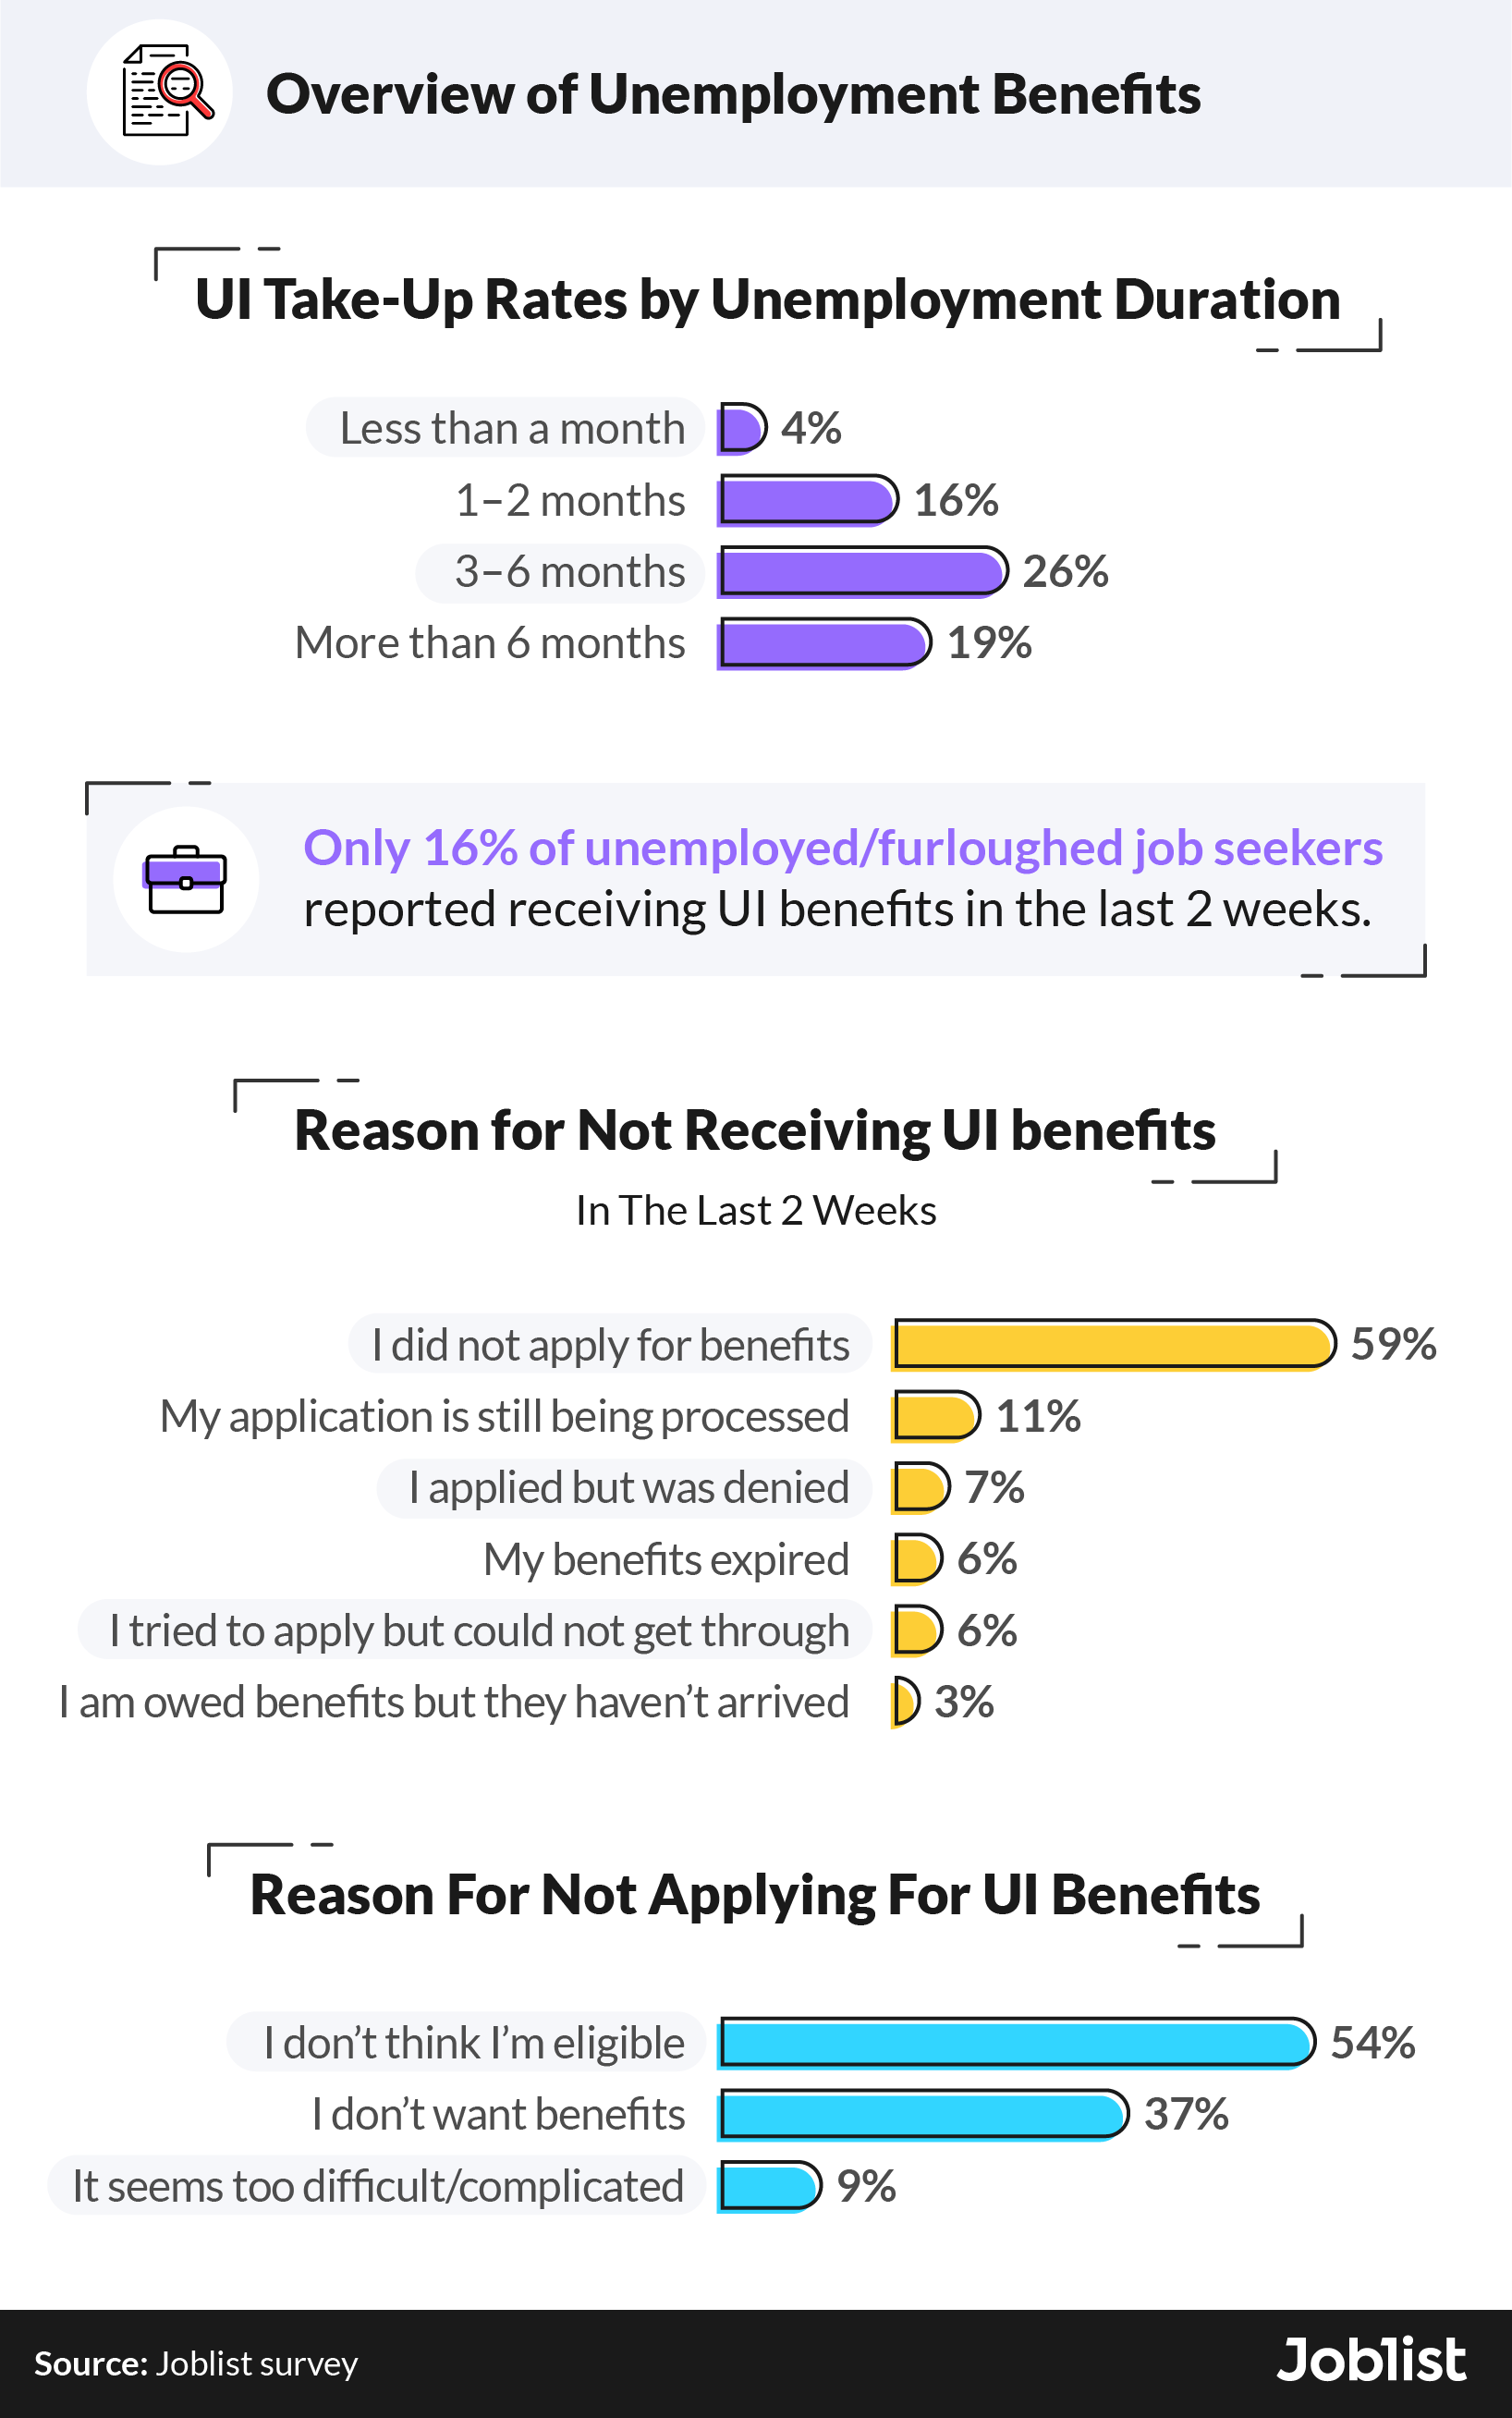 overview-of-unemployment-benefits